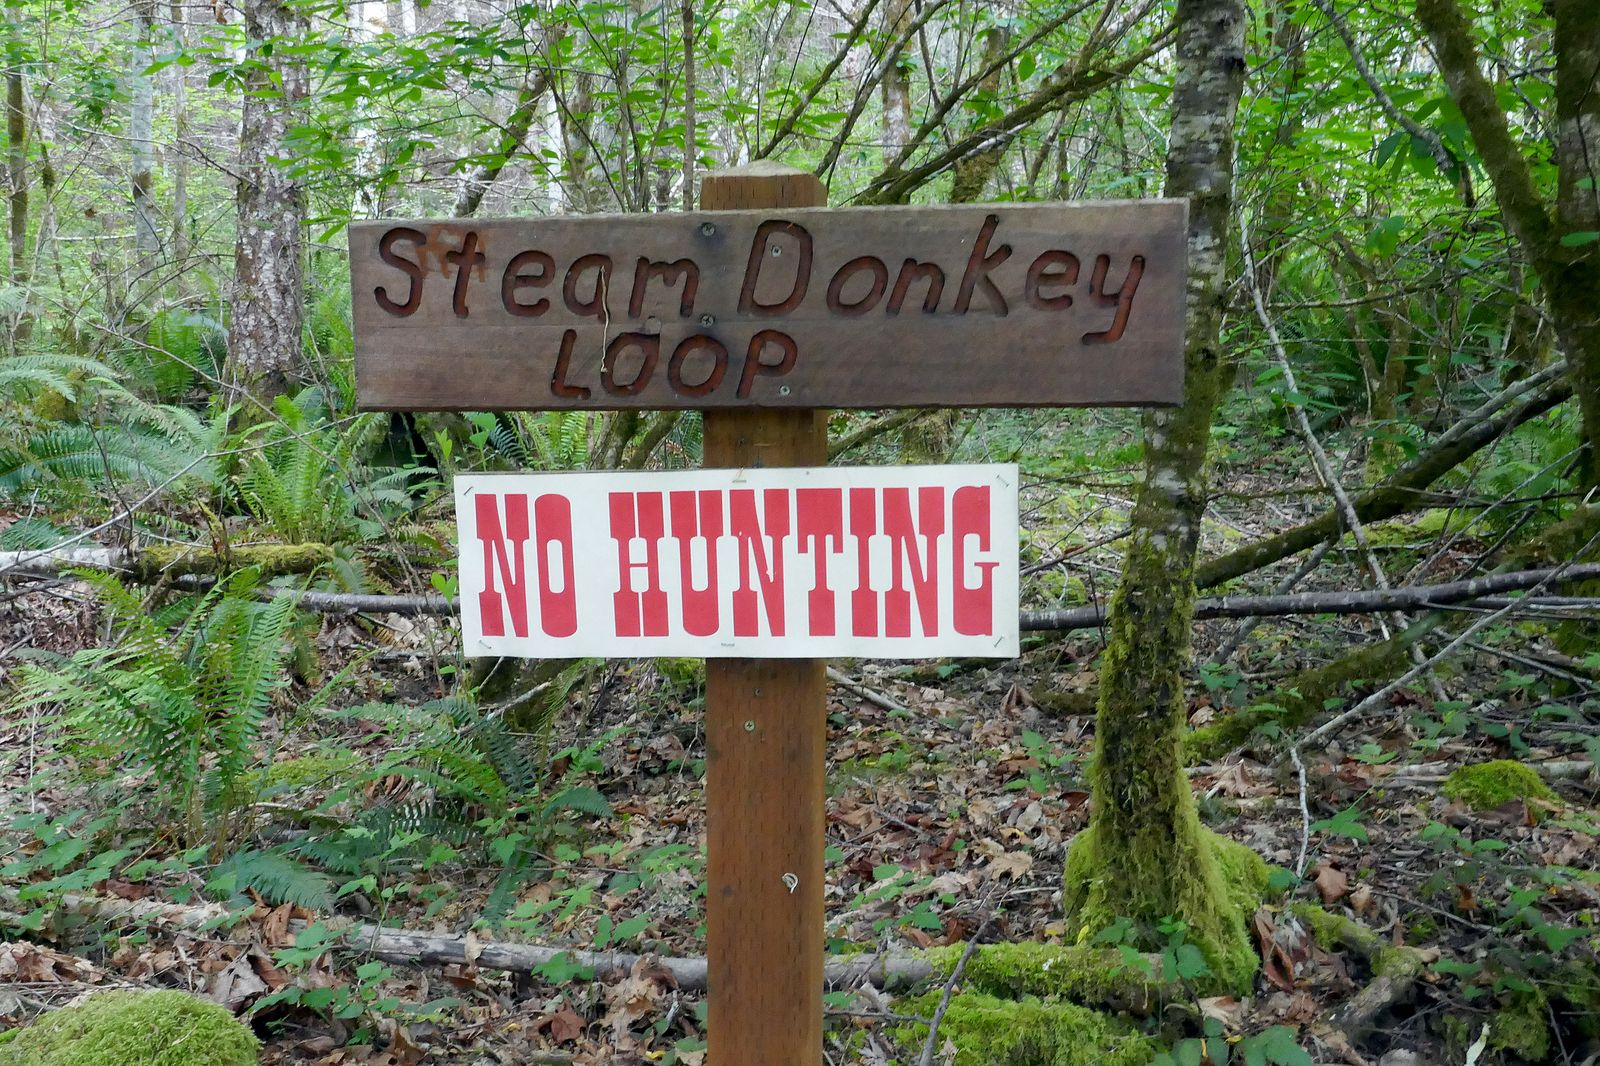 We finished the Maple Valley trail and begin the Steam Donkey trail